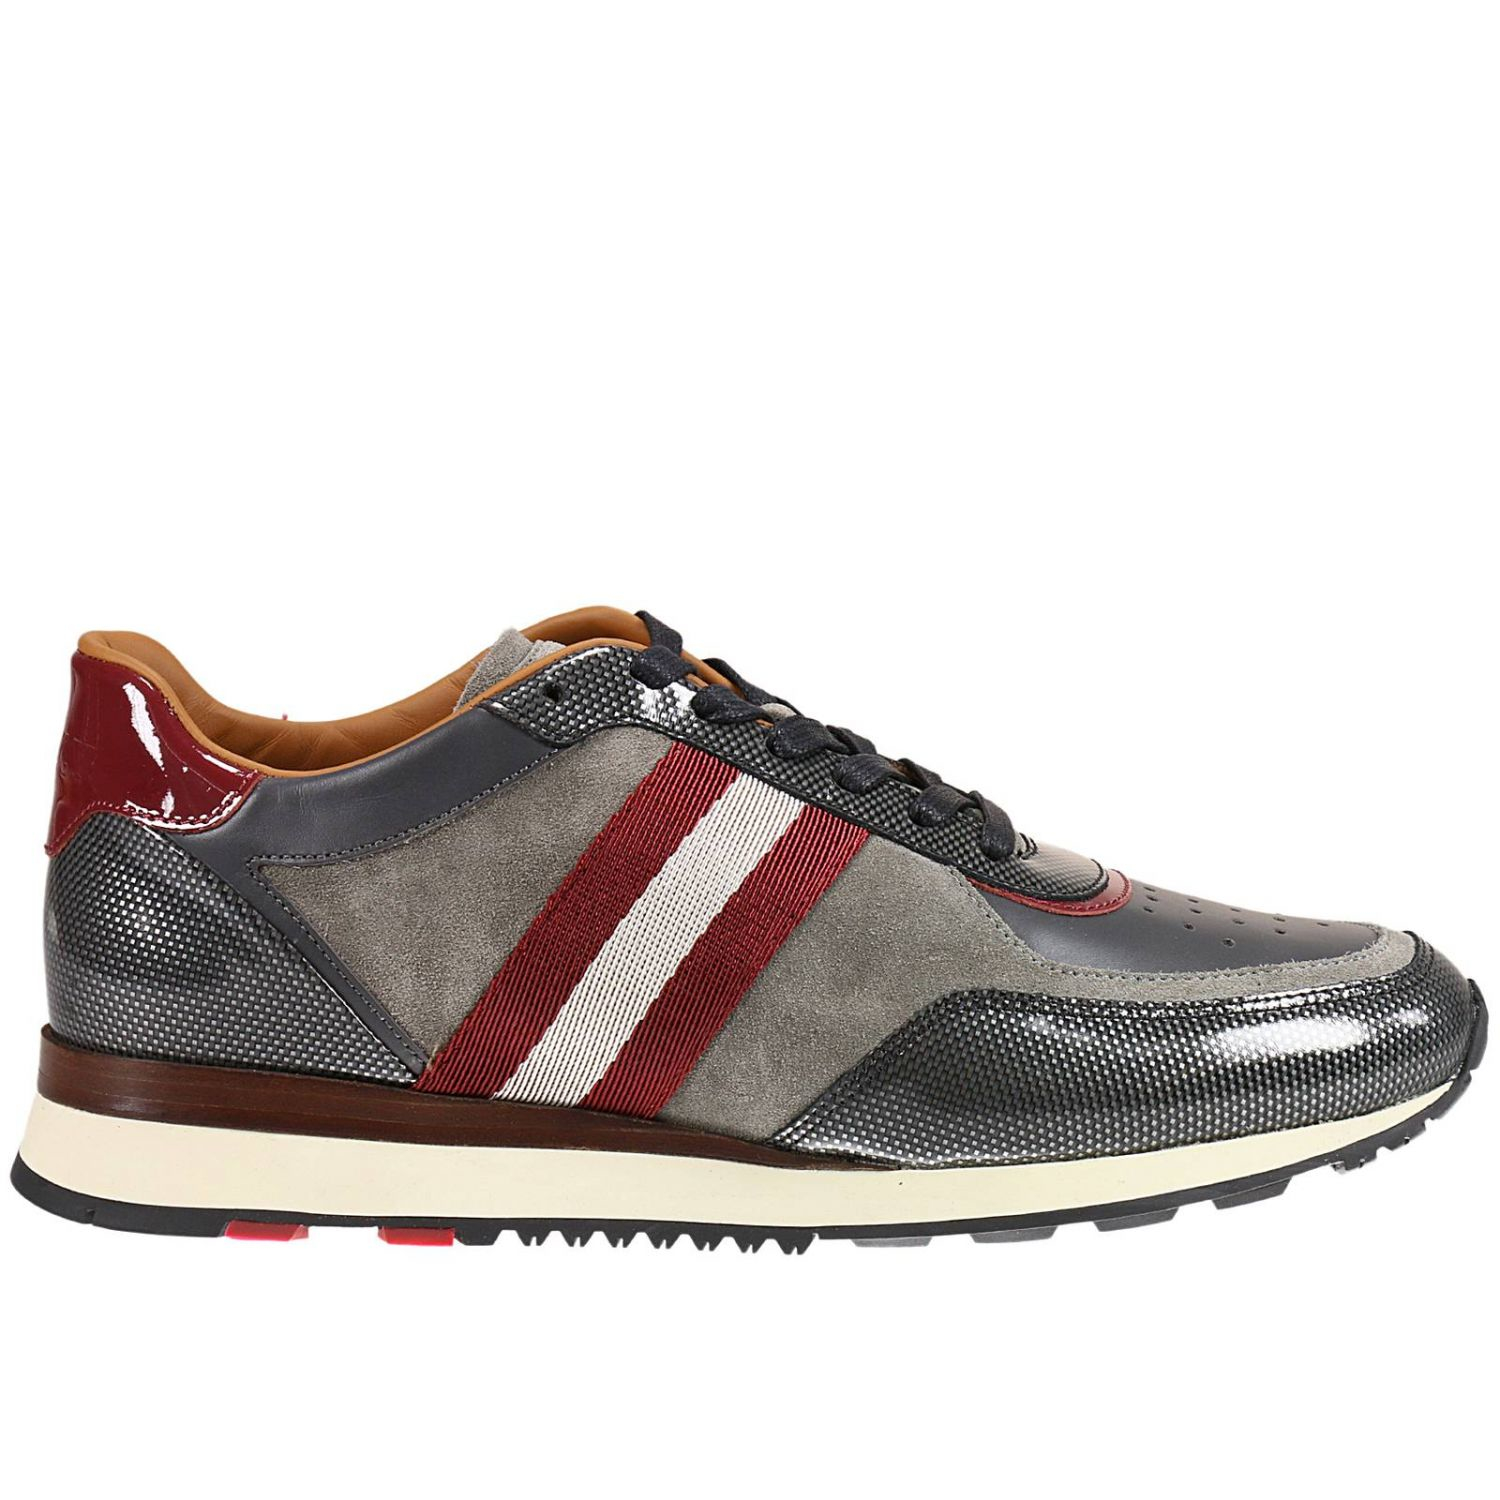 Bally Sneakers Shoes Man In Brown For Men